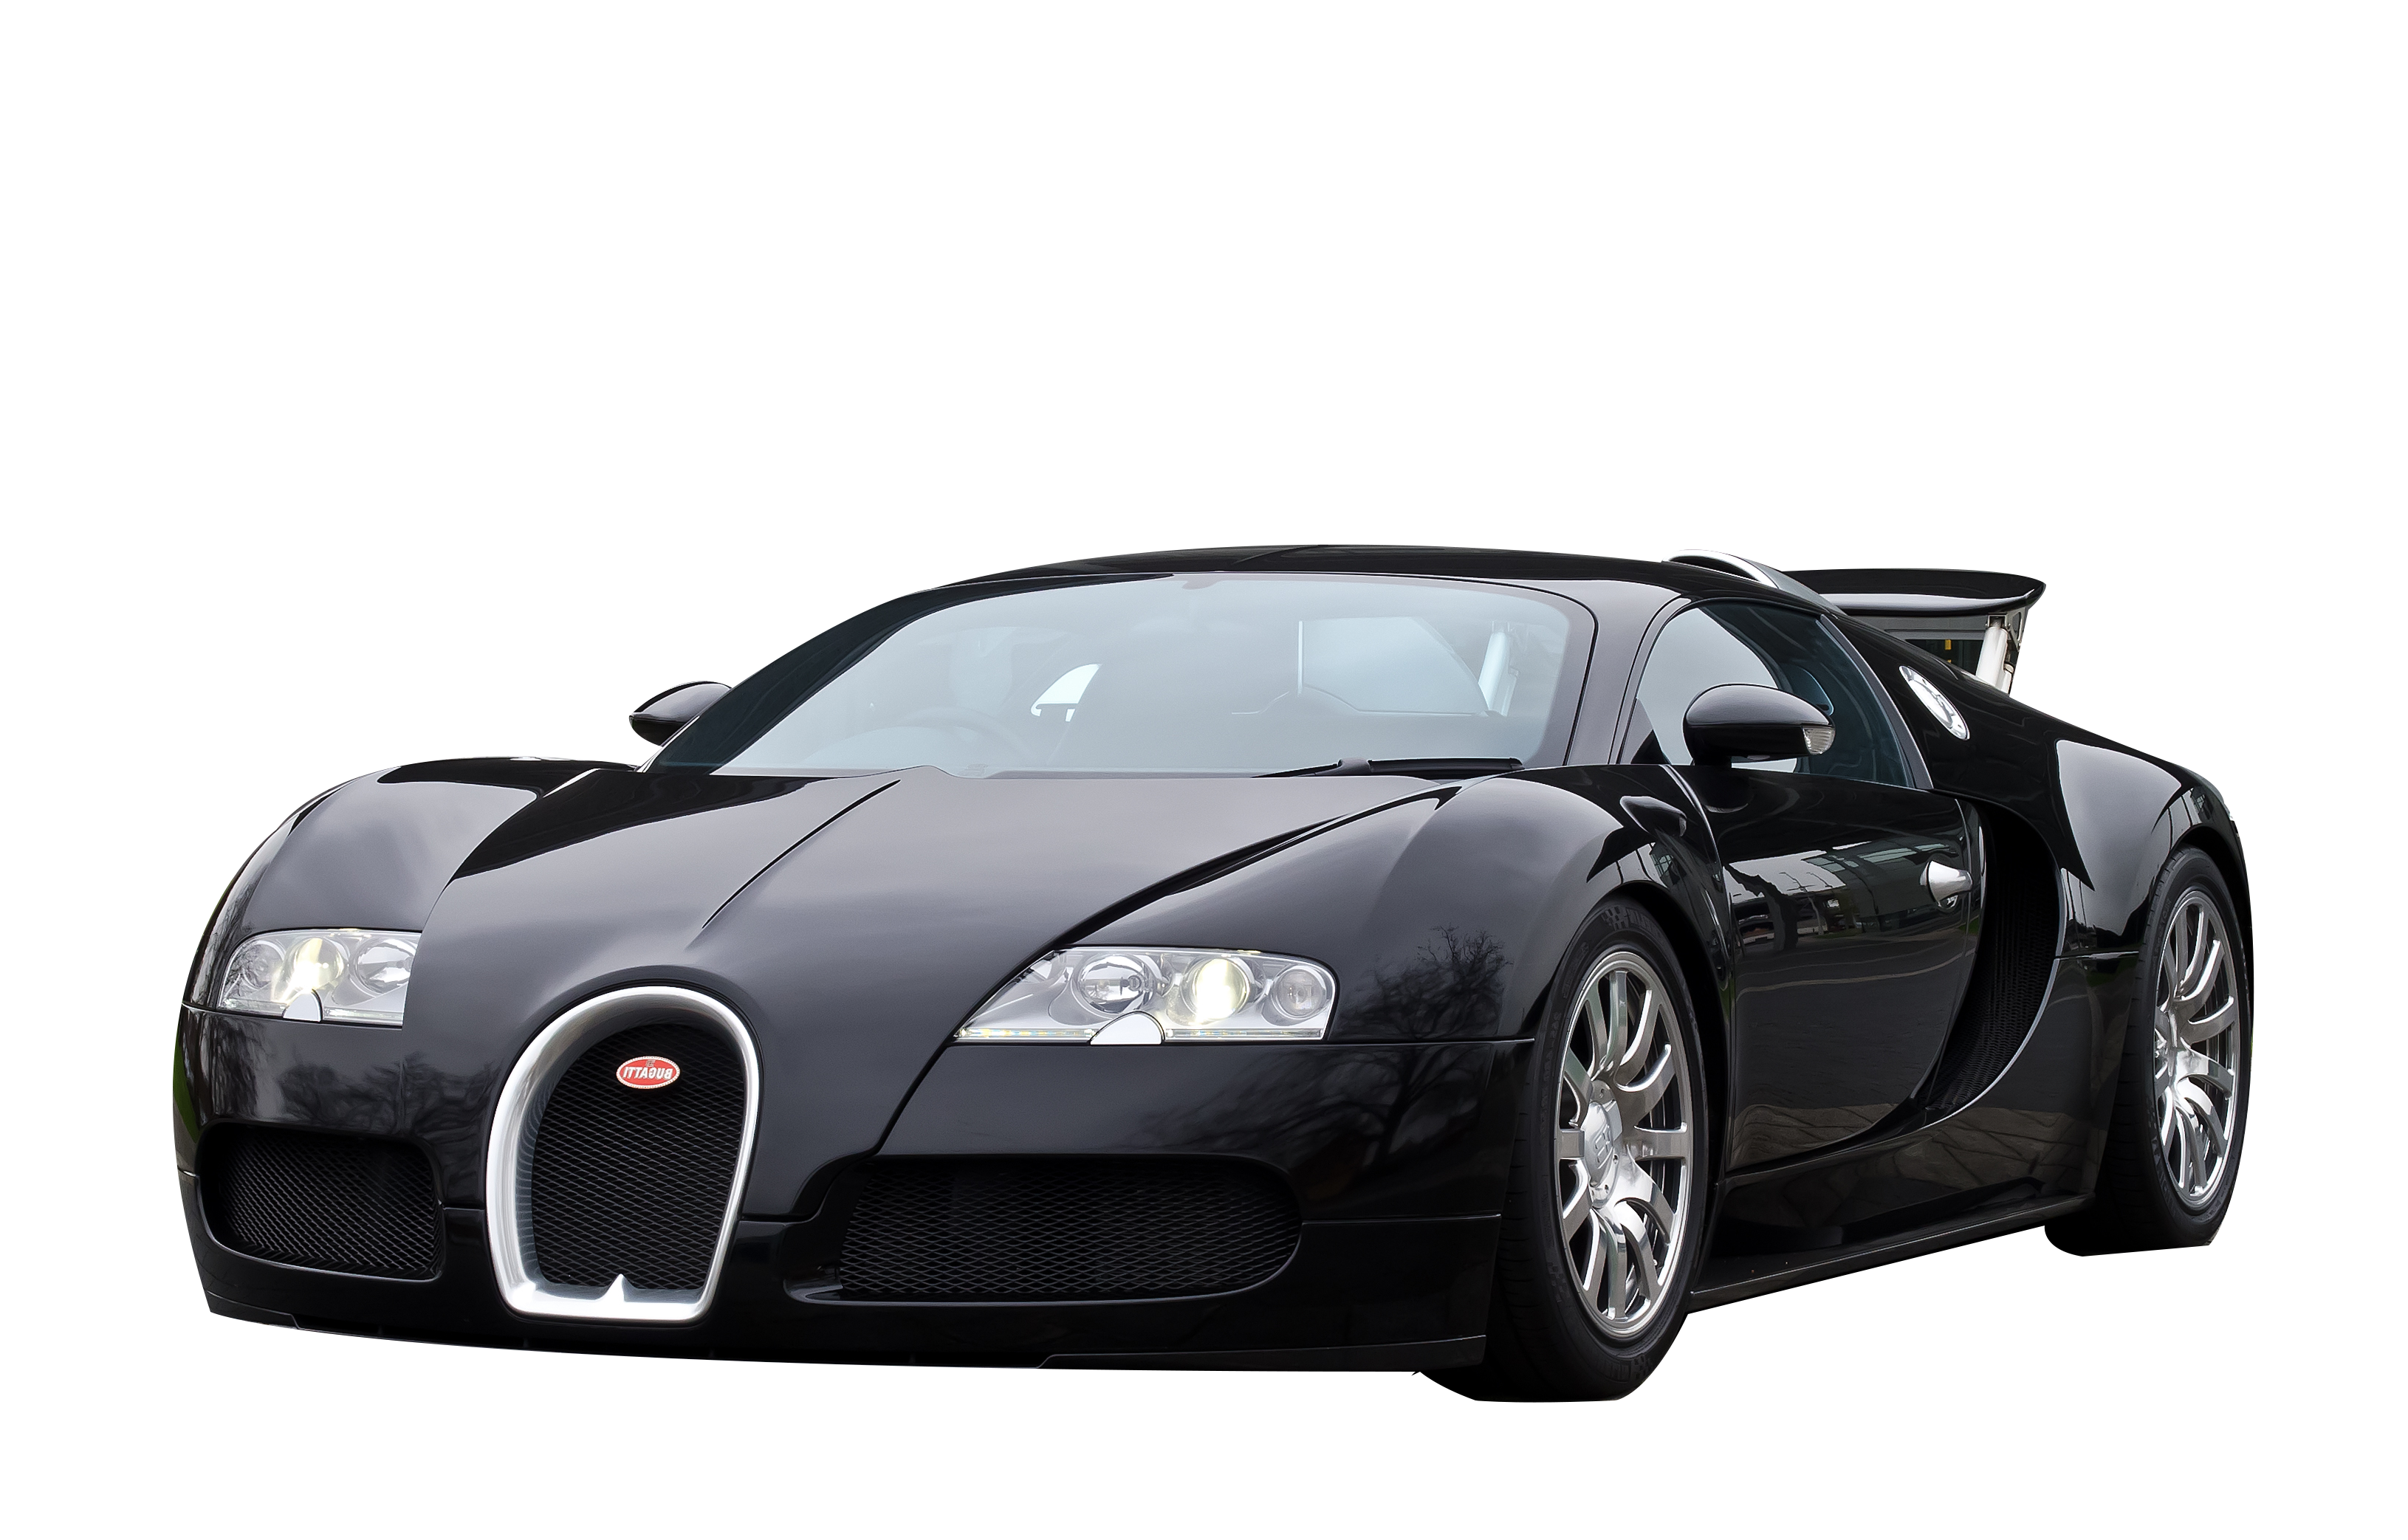 Best Bugatti Car Clipart Png Transparent Background Free Download 31731 Freeiconspng